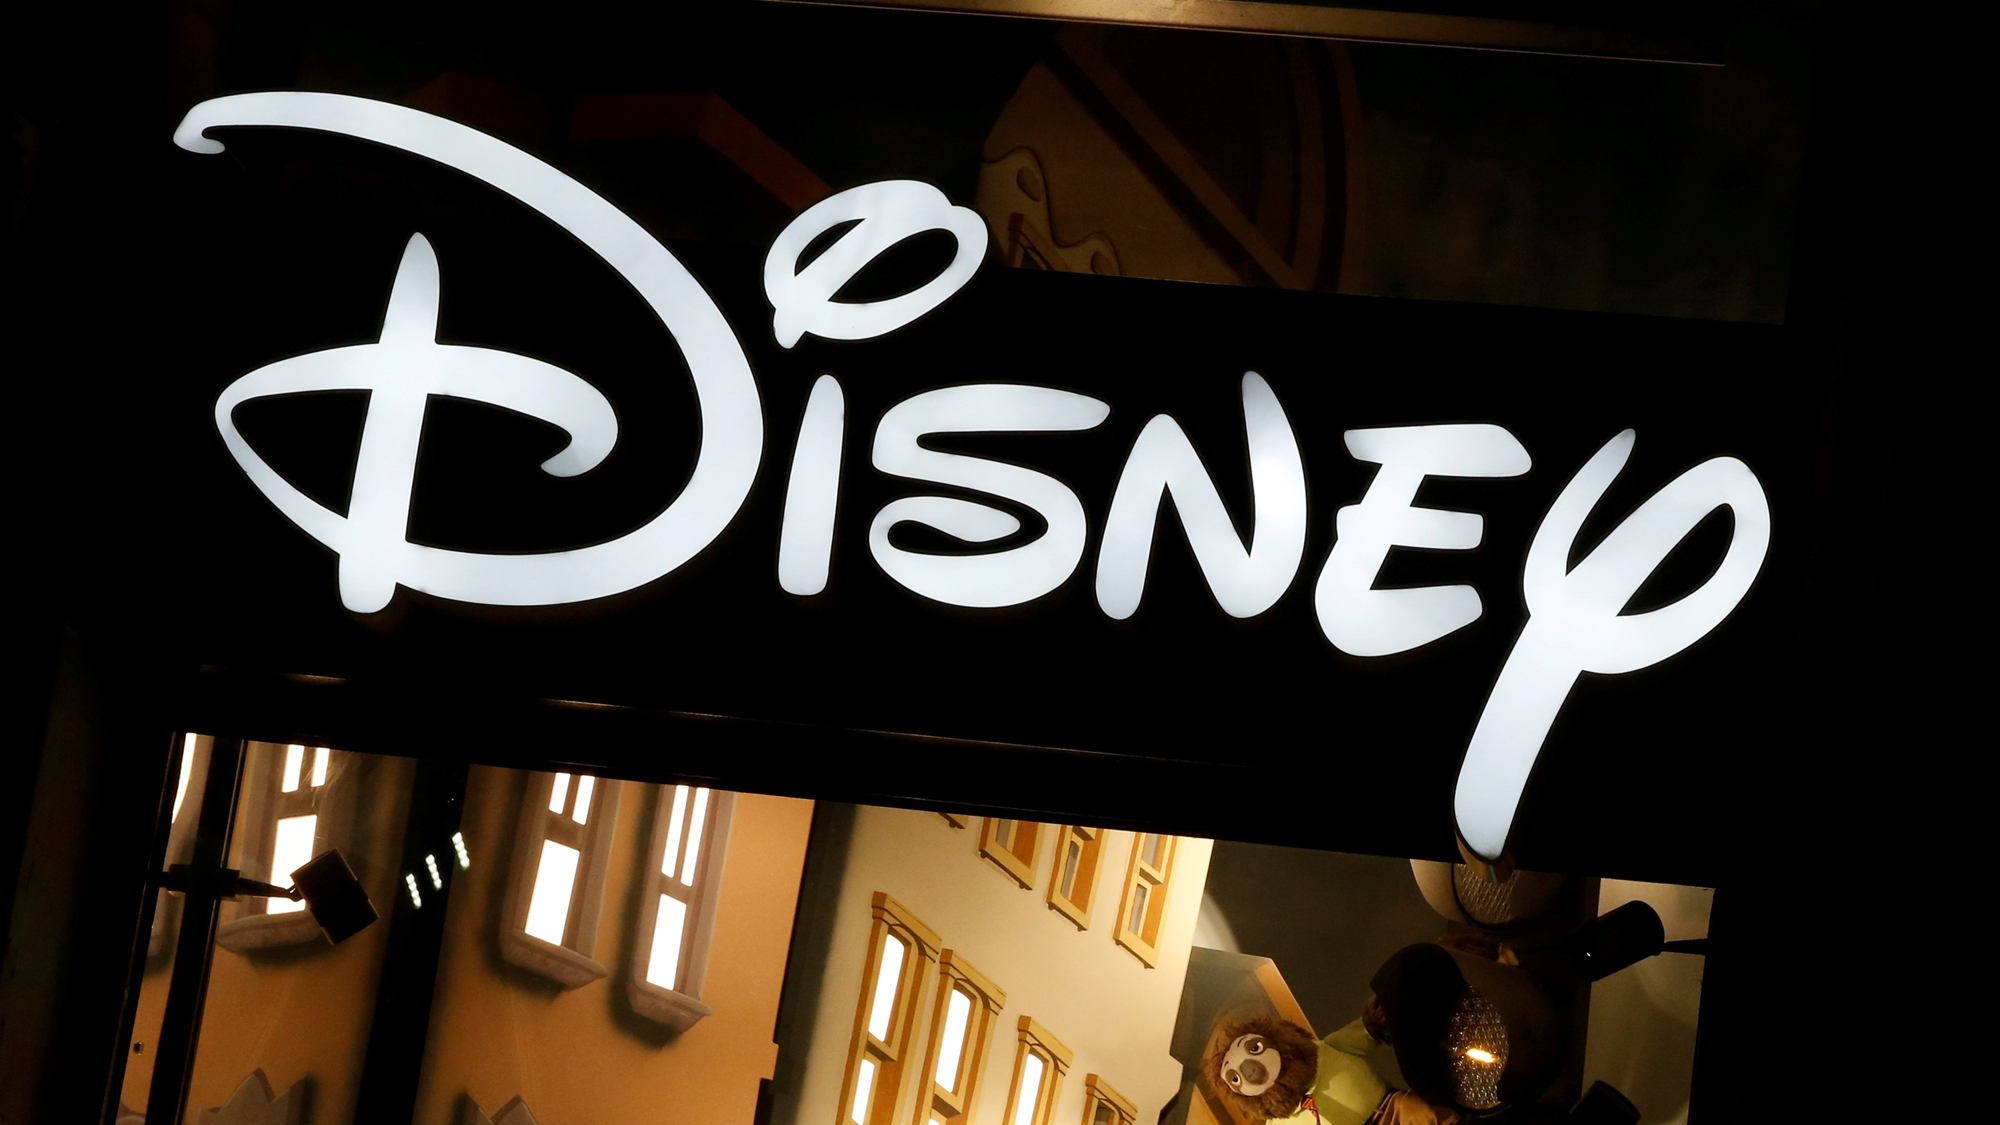 Disney presentó a Wall Street su servicio de streaming Disney+